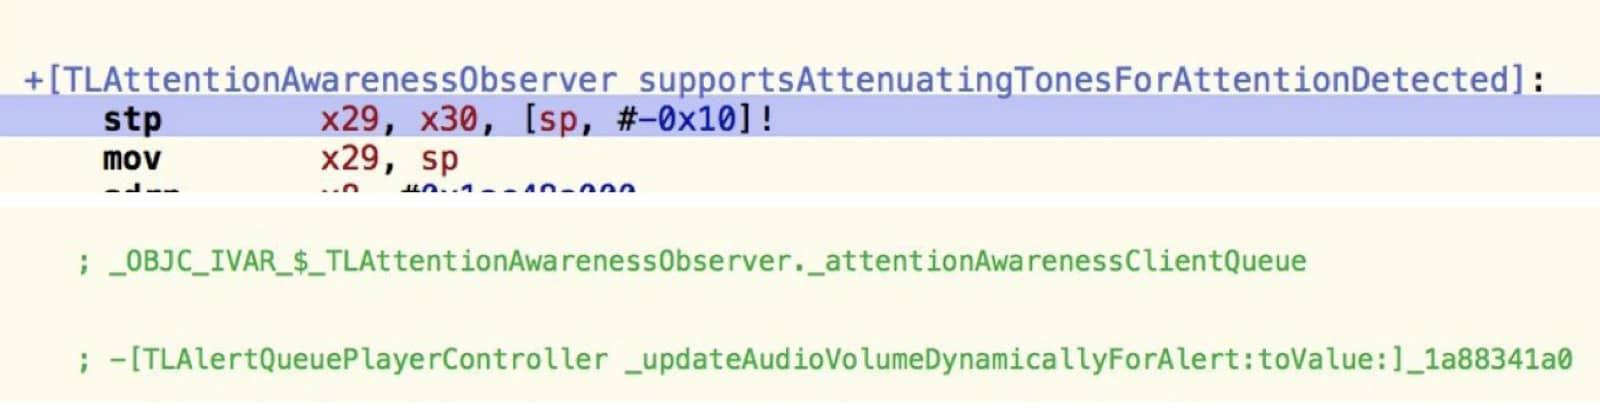 Code snippets for silencing notifications when you look at your iPhone. Eye-tracking ads could also use code like this.